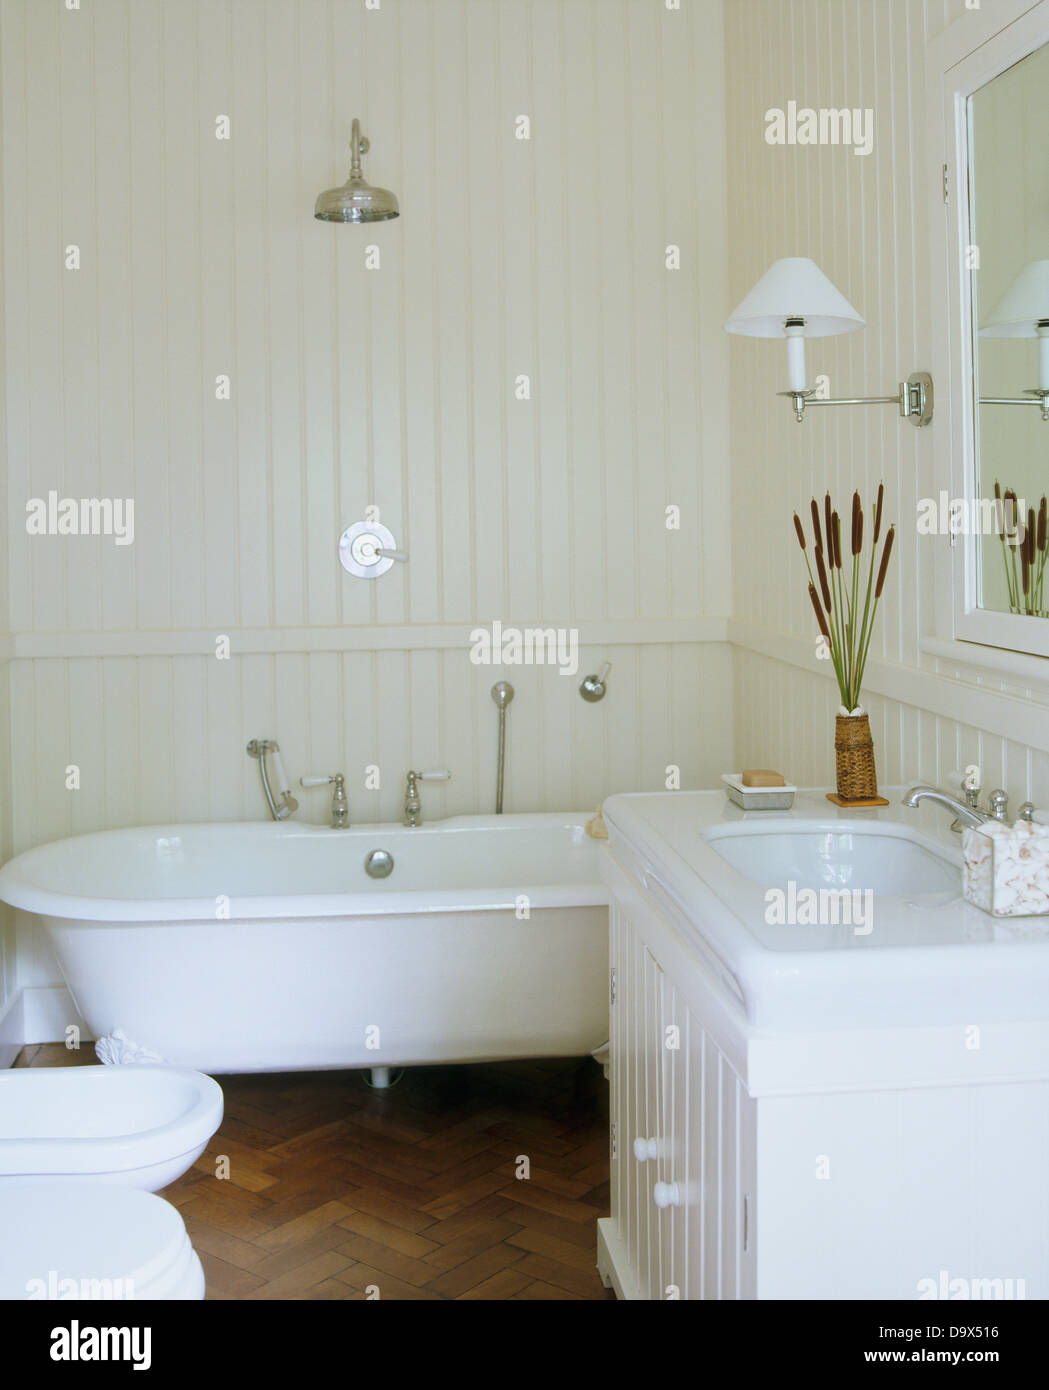 Chrome Shower Above Roll Top Bath In White Bathroom With White Stock Photo Royalty Free Image